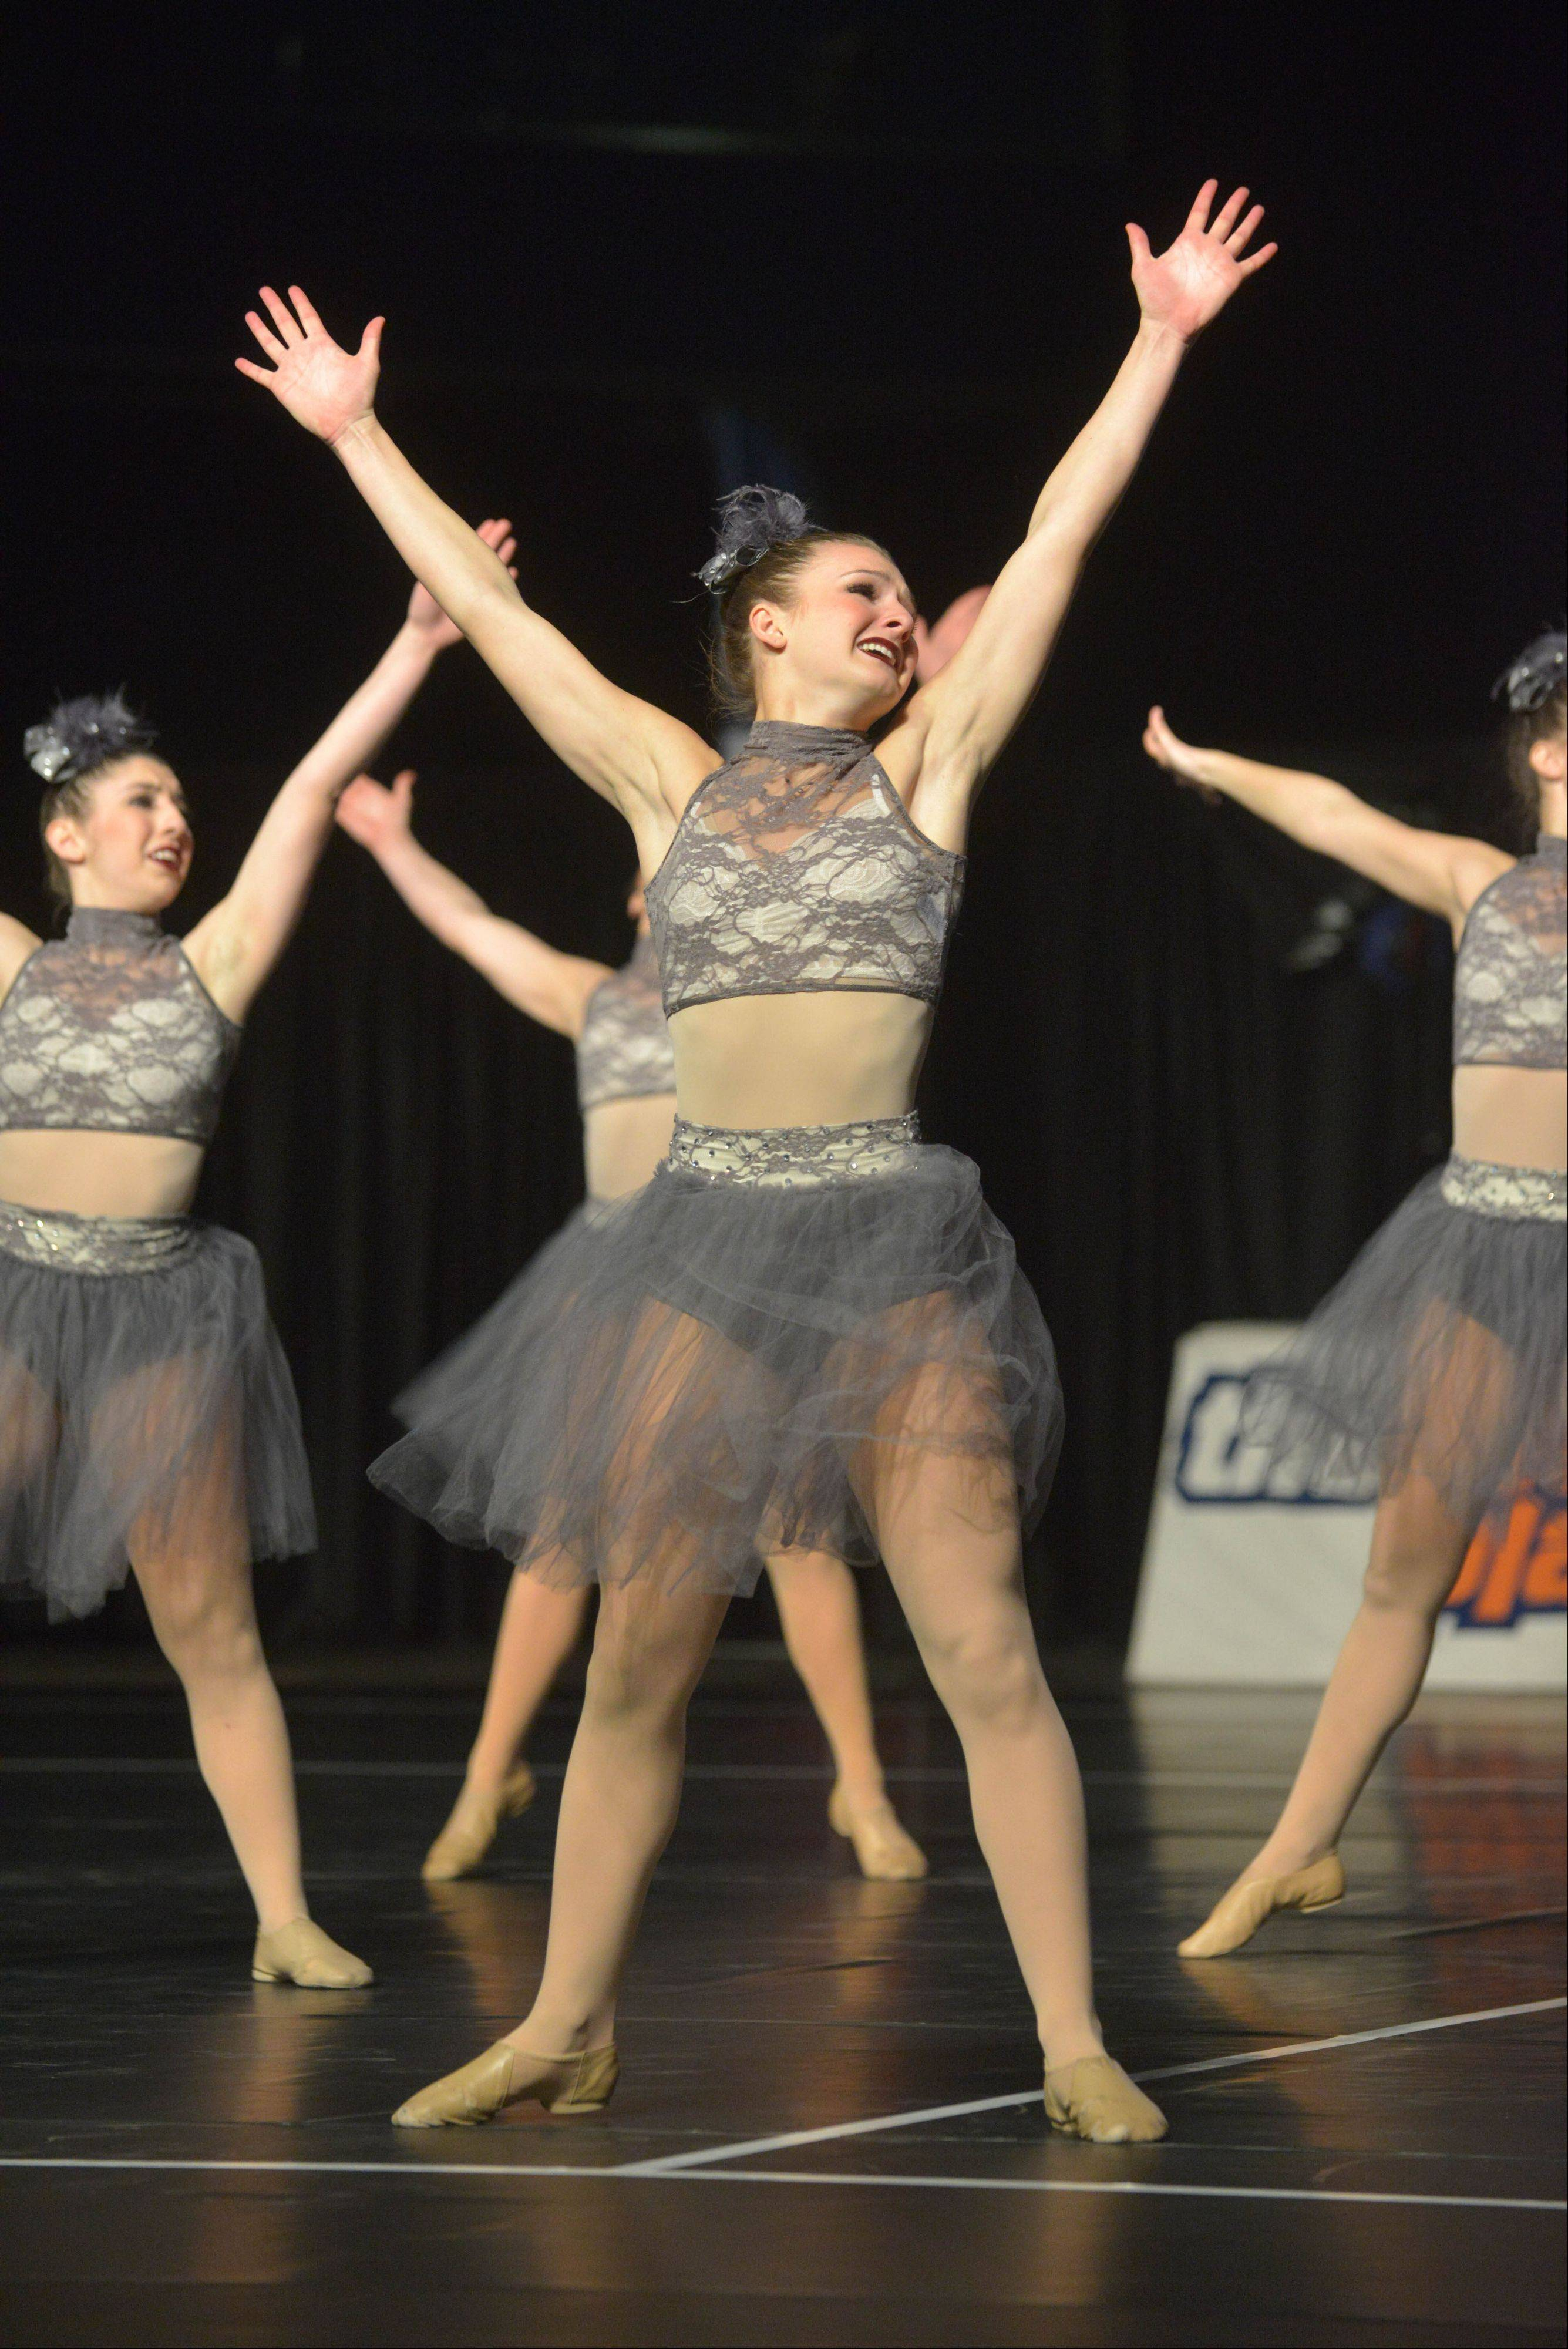 South Elgin High School took part in the IHSA Dance State Final at U.S. Cellular Coliseum in Bloomington Saturday. 90 teams vied for state champion at this event.